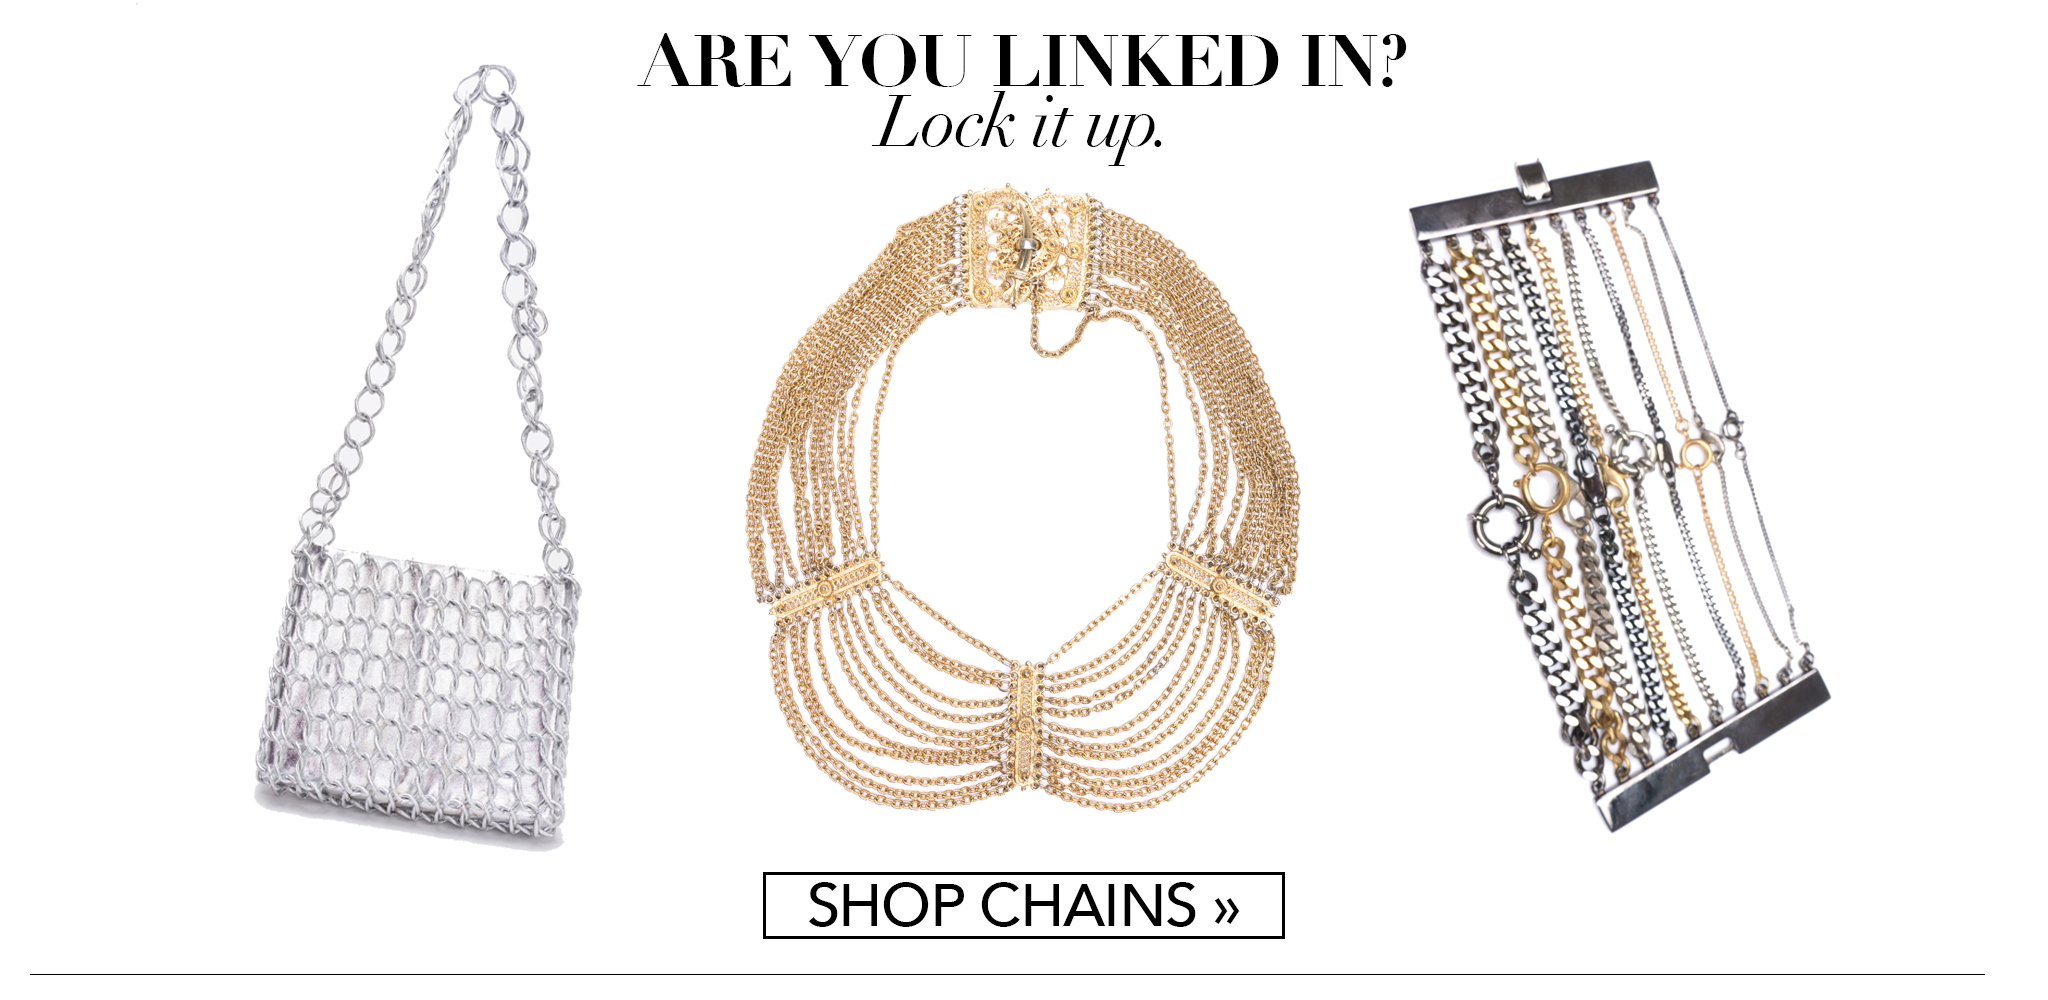 Recess Consignment Holiday Gift Guide Get Linked Chain Collection